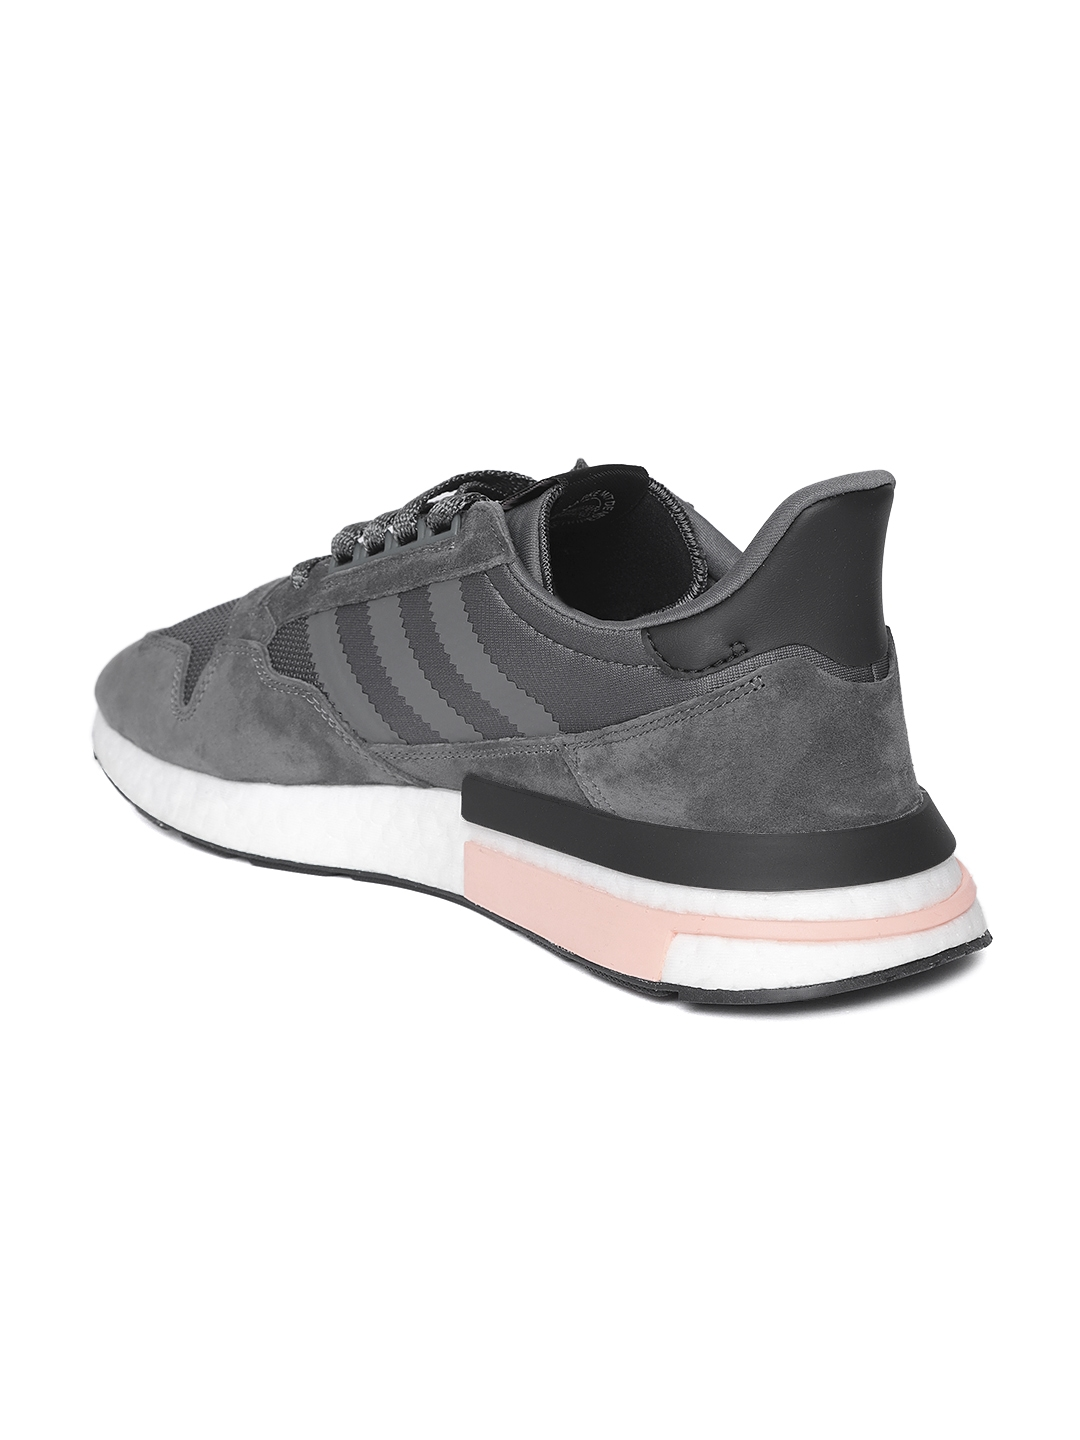 quality design 102b2 1ce24 ADIDAS Originals Men Charcoal Grey ZX 500 RM Sneakers